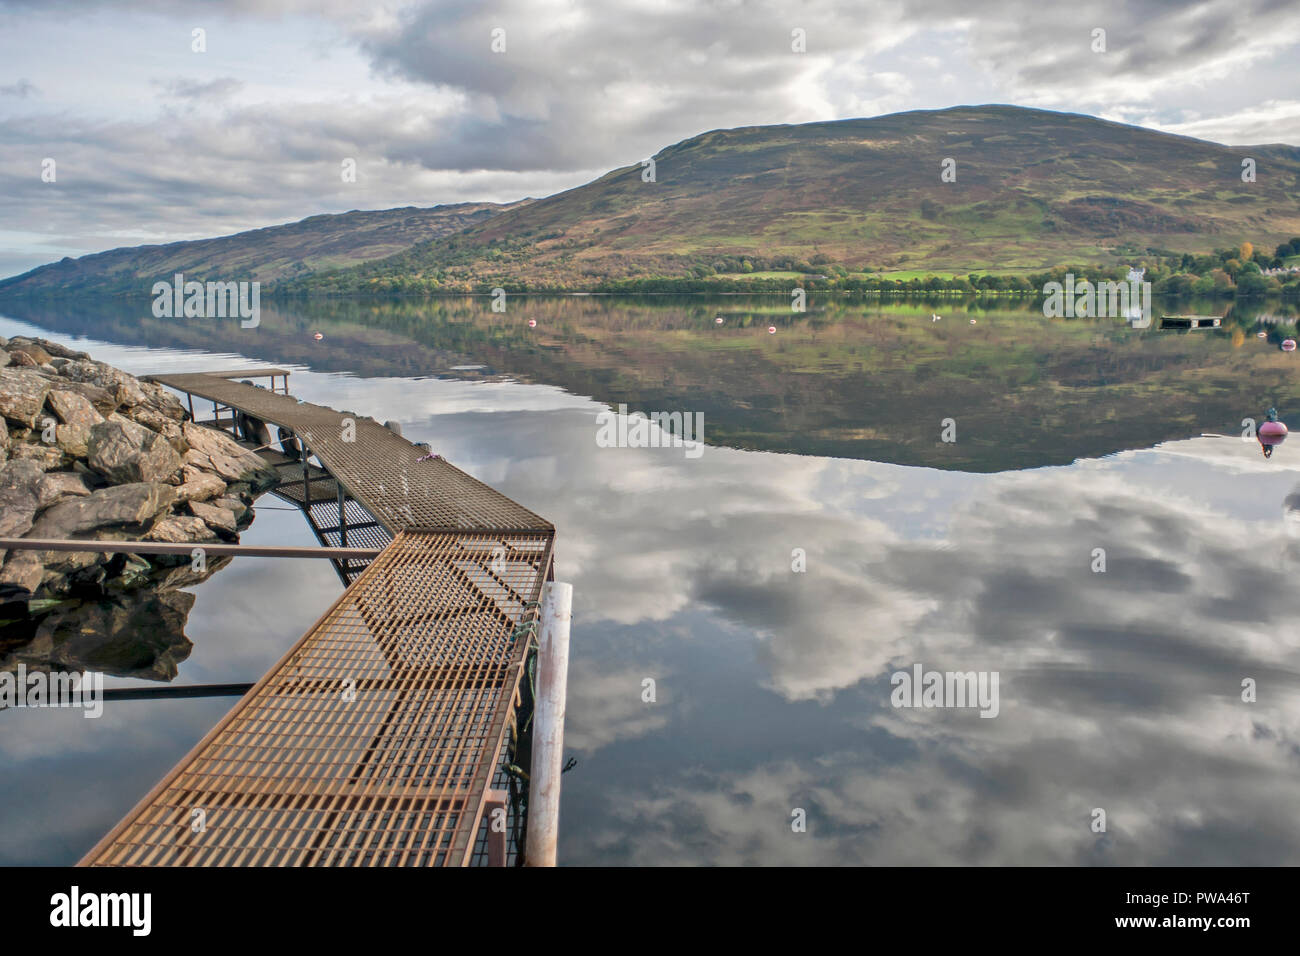 Views across Loch Earn, Perth and Kinross and Stirling, Scotland  on a calm day with reflections of the sky in the water - Stock Image